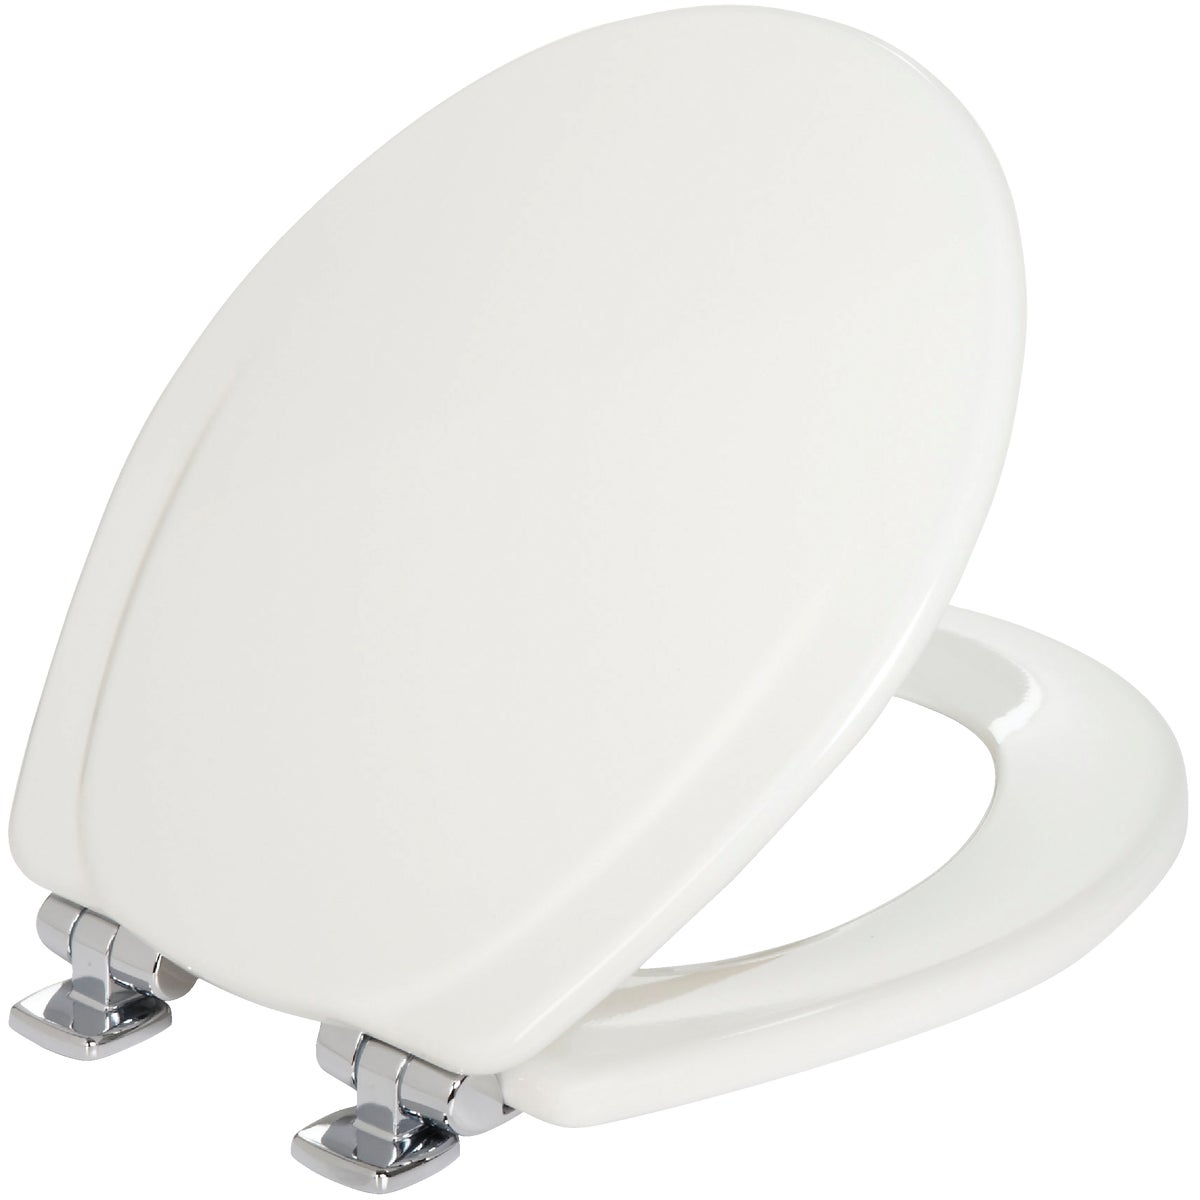 WHT RND WOOD TOILET SEAT - 30CHSL-000 by Bemis Mfg